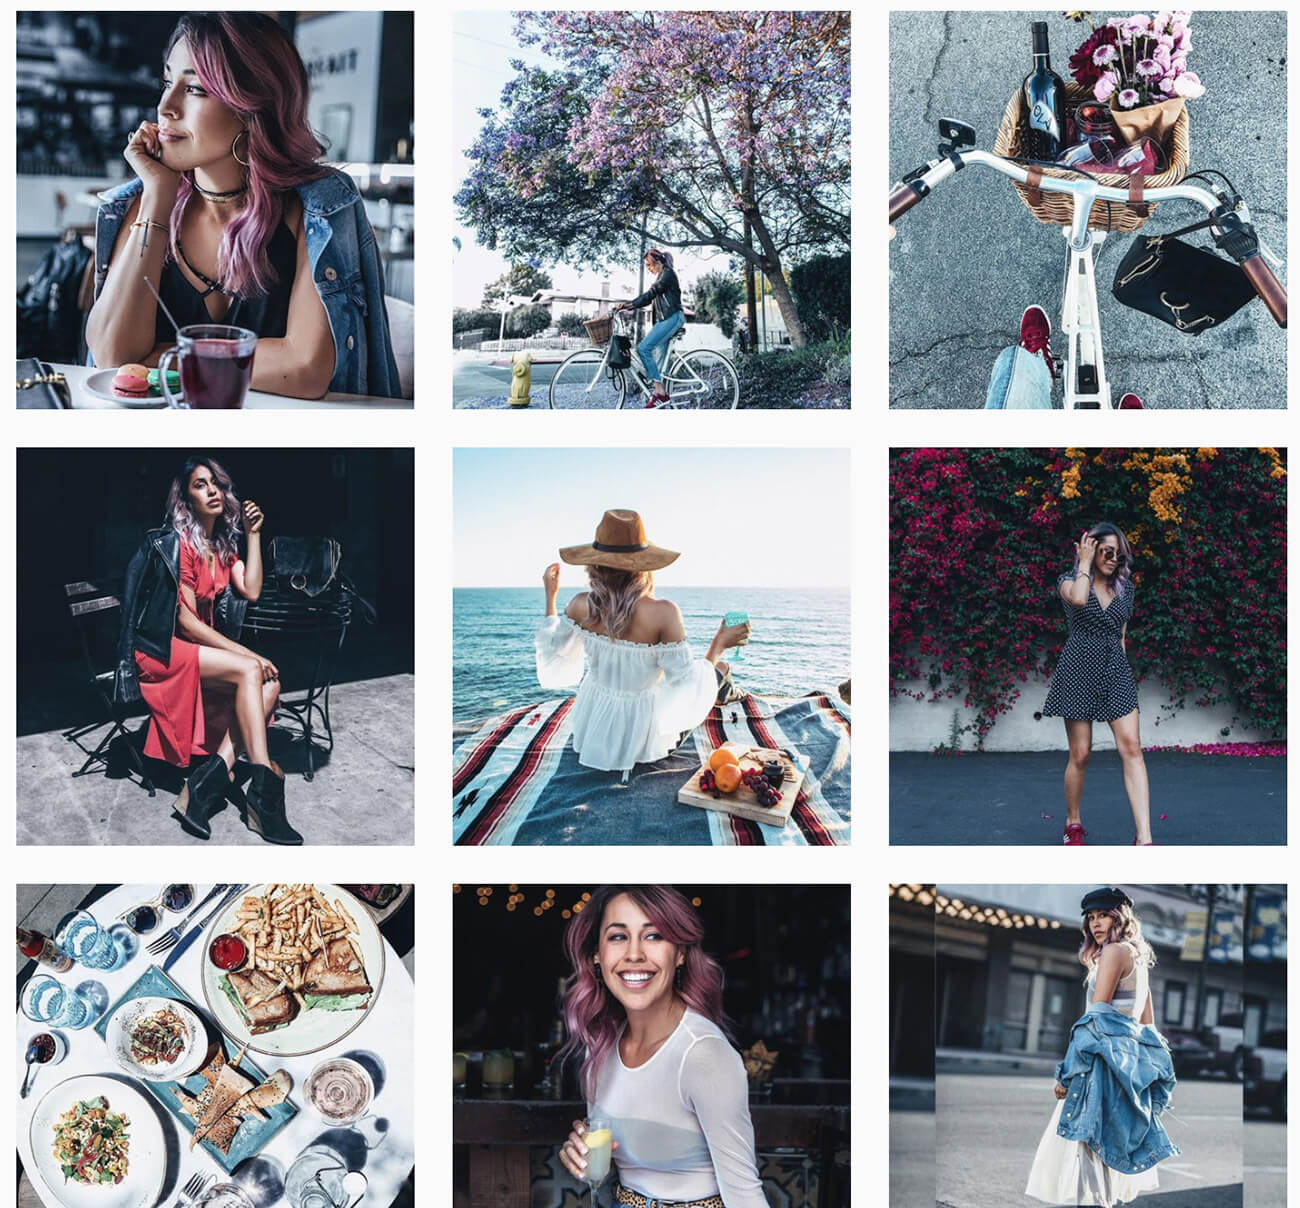 examples for organizing an Instagram aesthetic